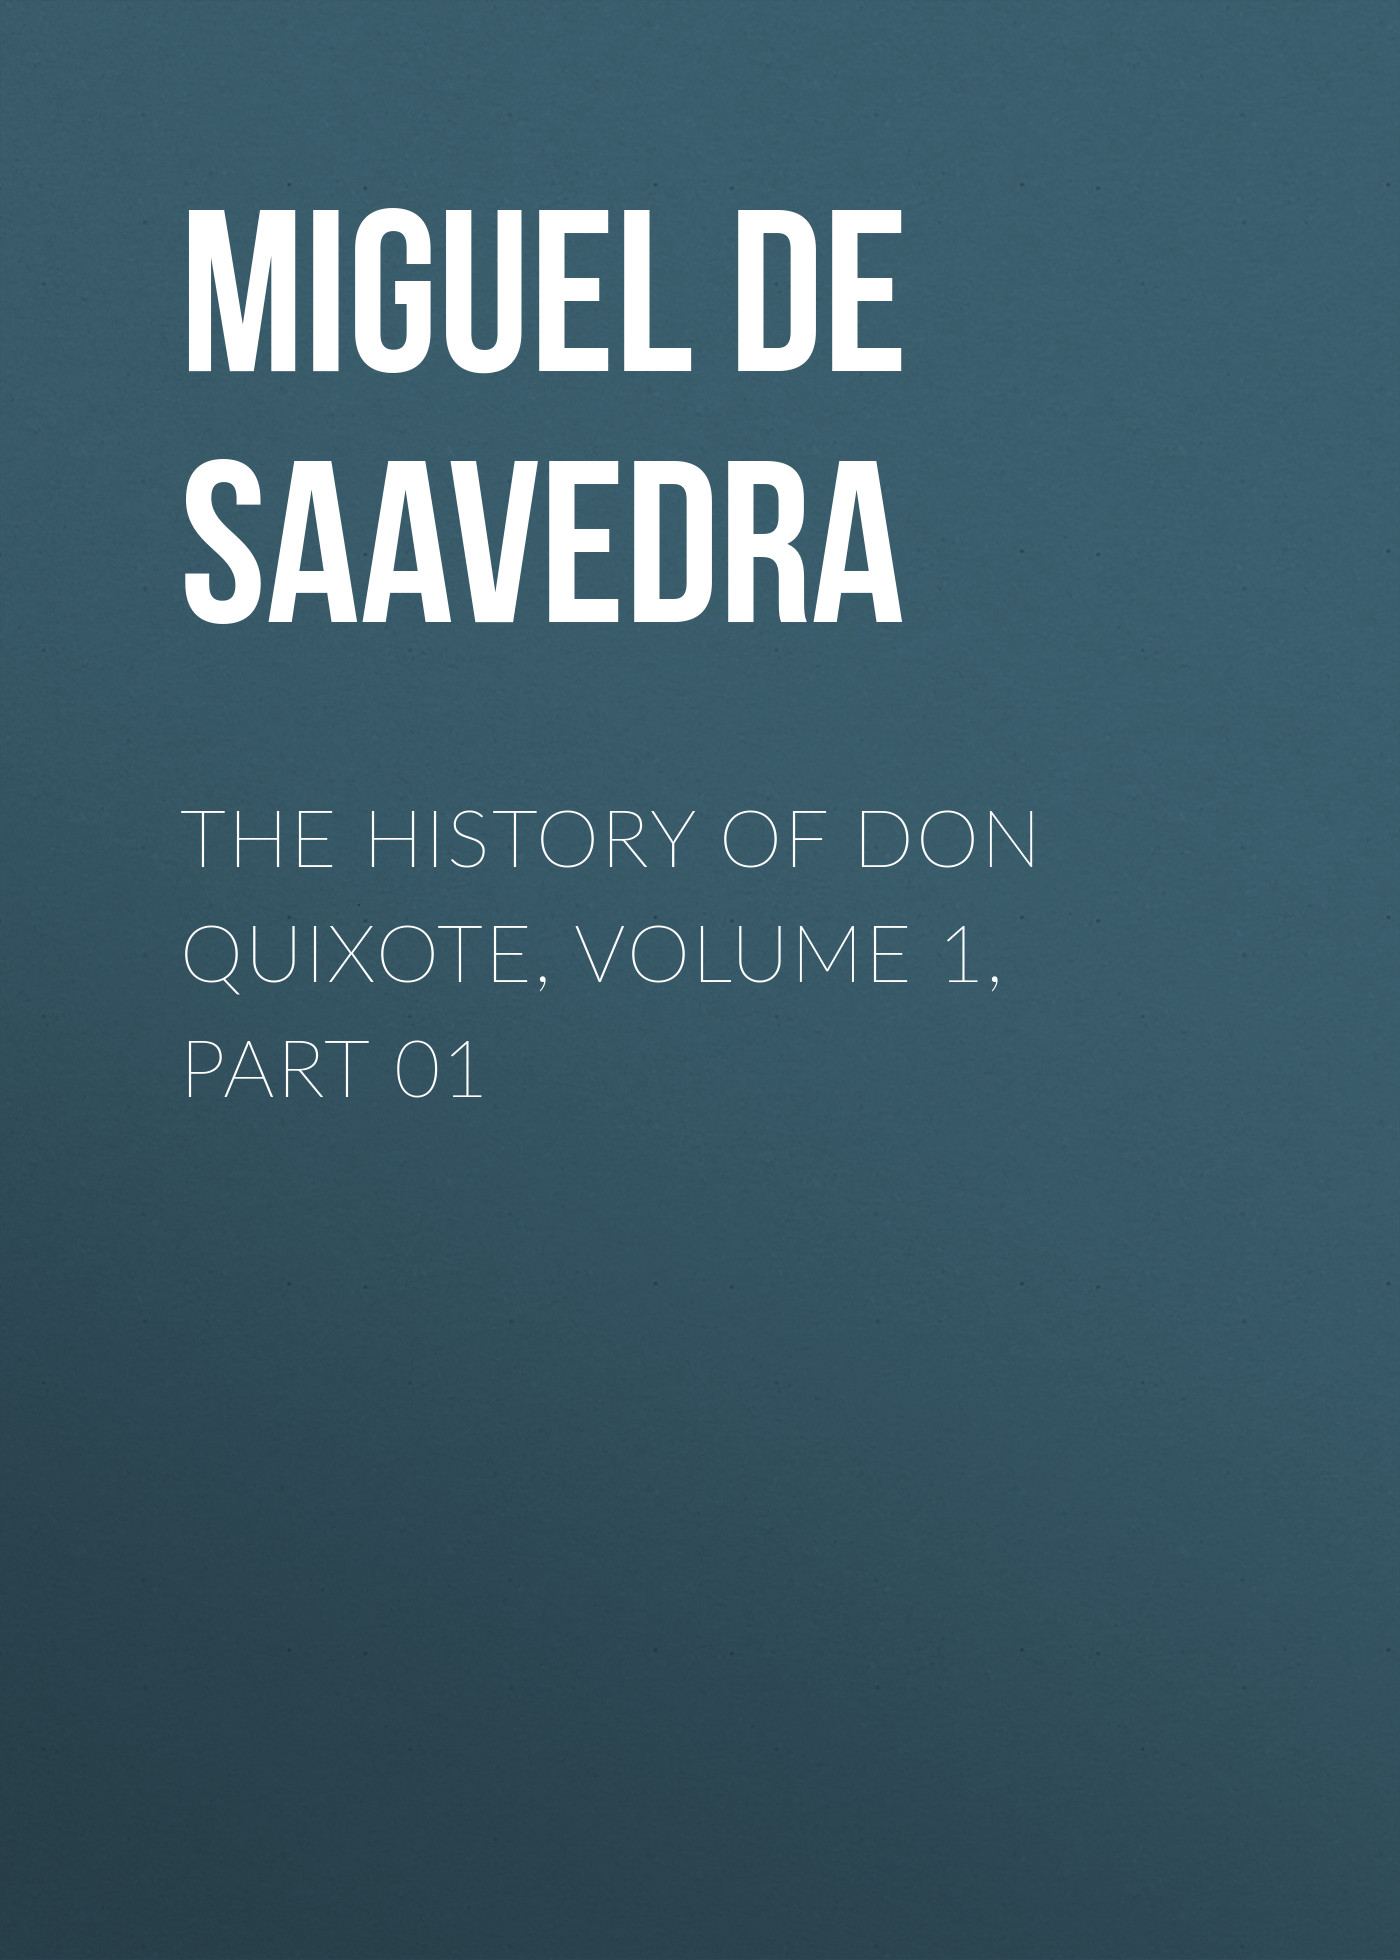 Мигель де Сервантес Сааведра The History of Don Quixote, Volume 1, Part 01 g l shumway history of western nebraska and its people volume 3 part 1